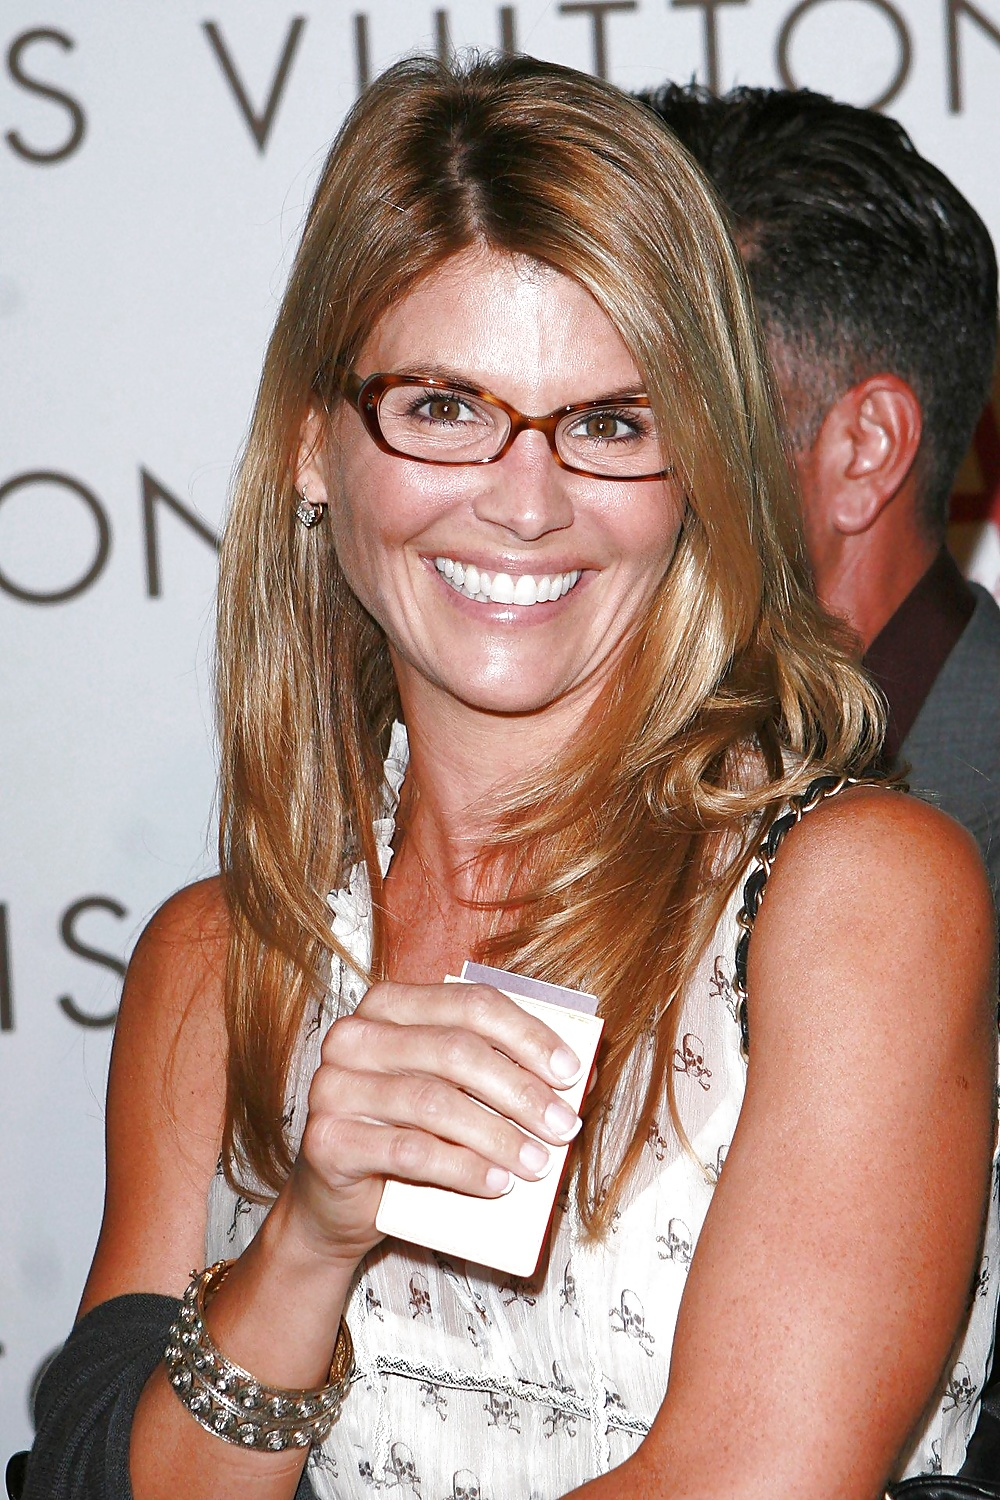 Inside Lori Loughlin's Life After The College Admissions Scandal